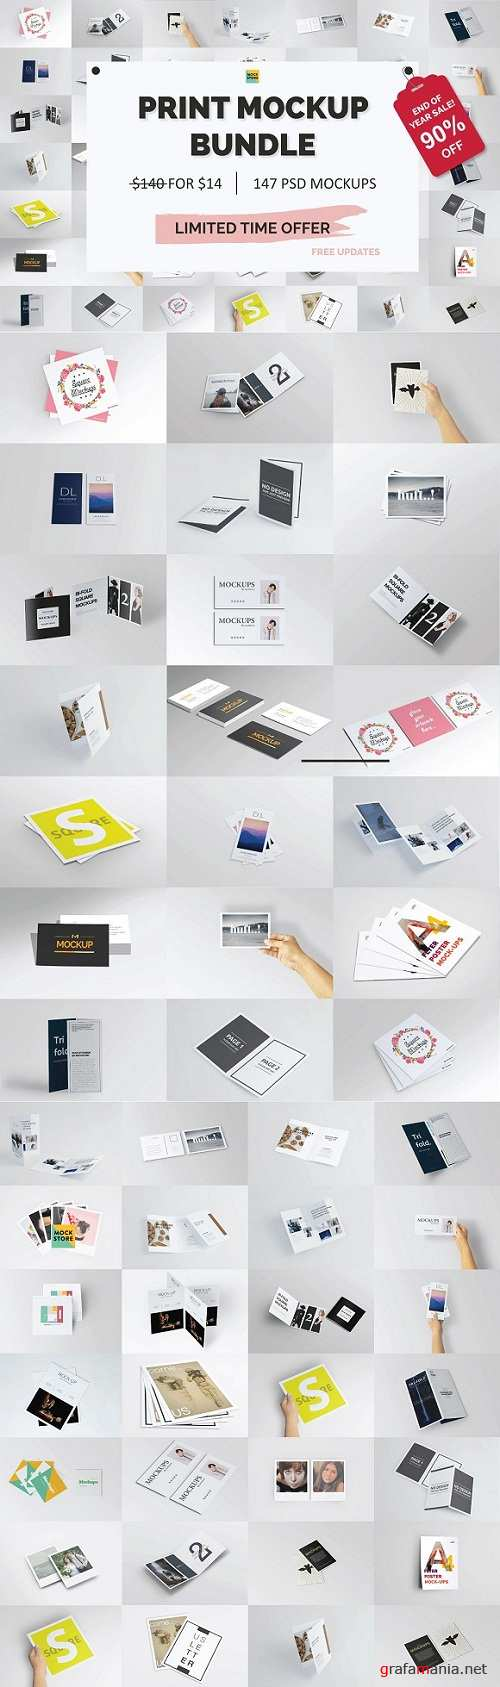 Print Mockup Bundle - Year End Sale - 3311802